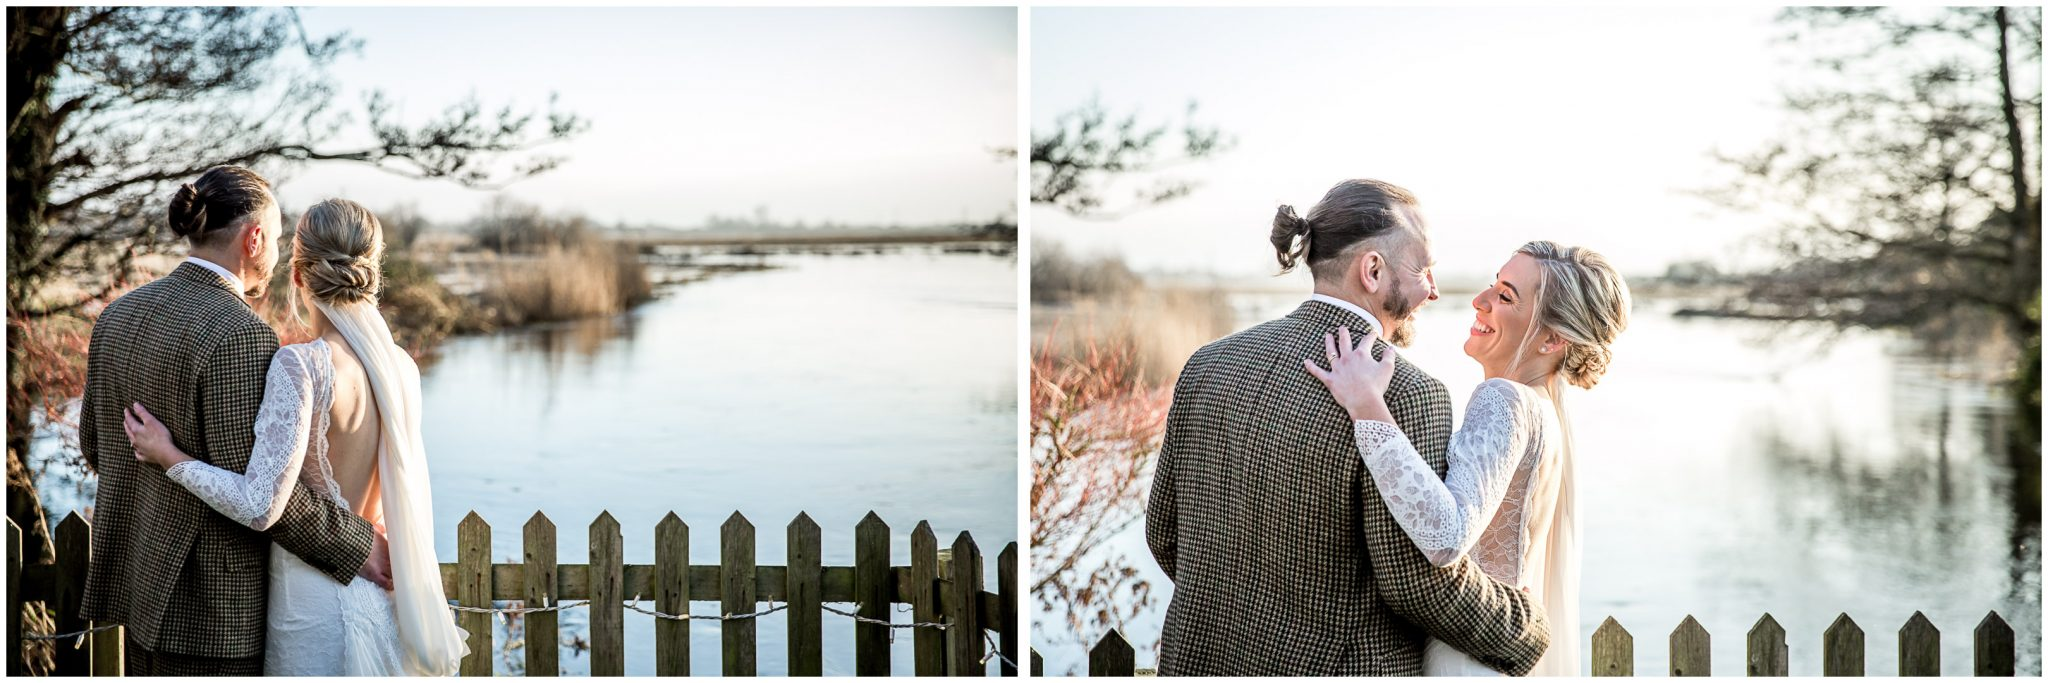 Bride and groom looking out across the flooded water meadows